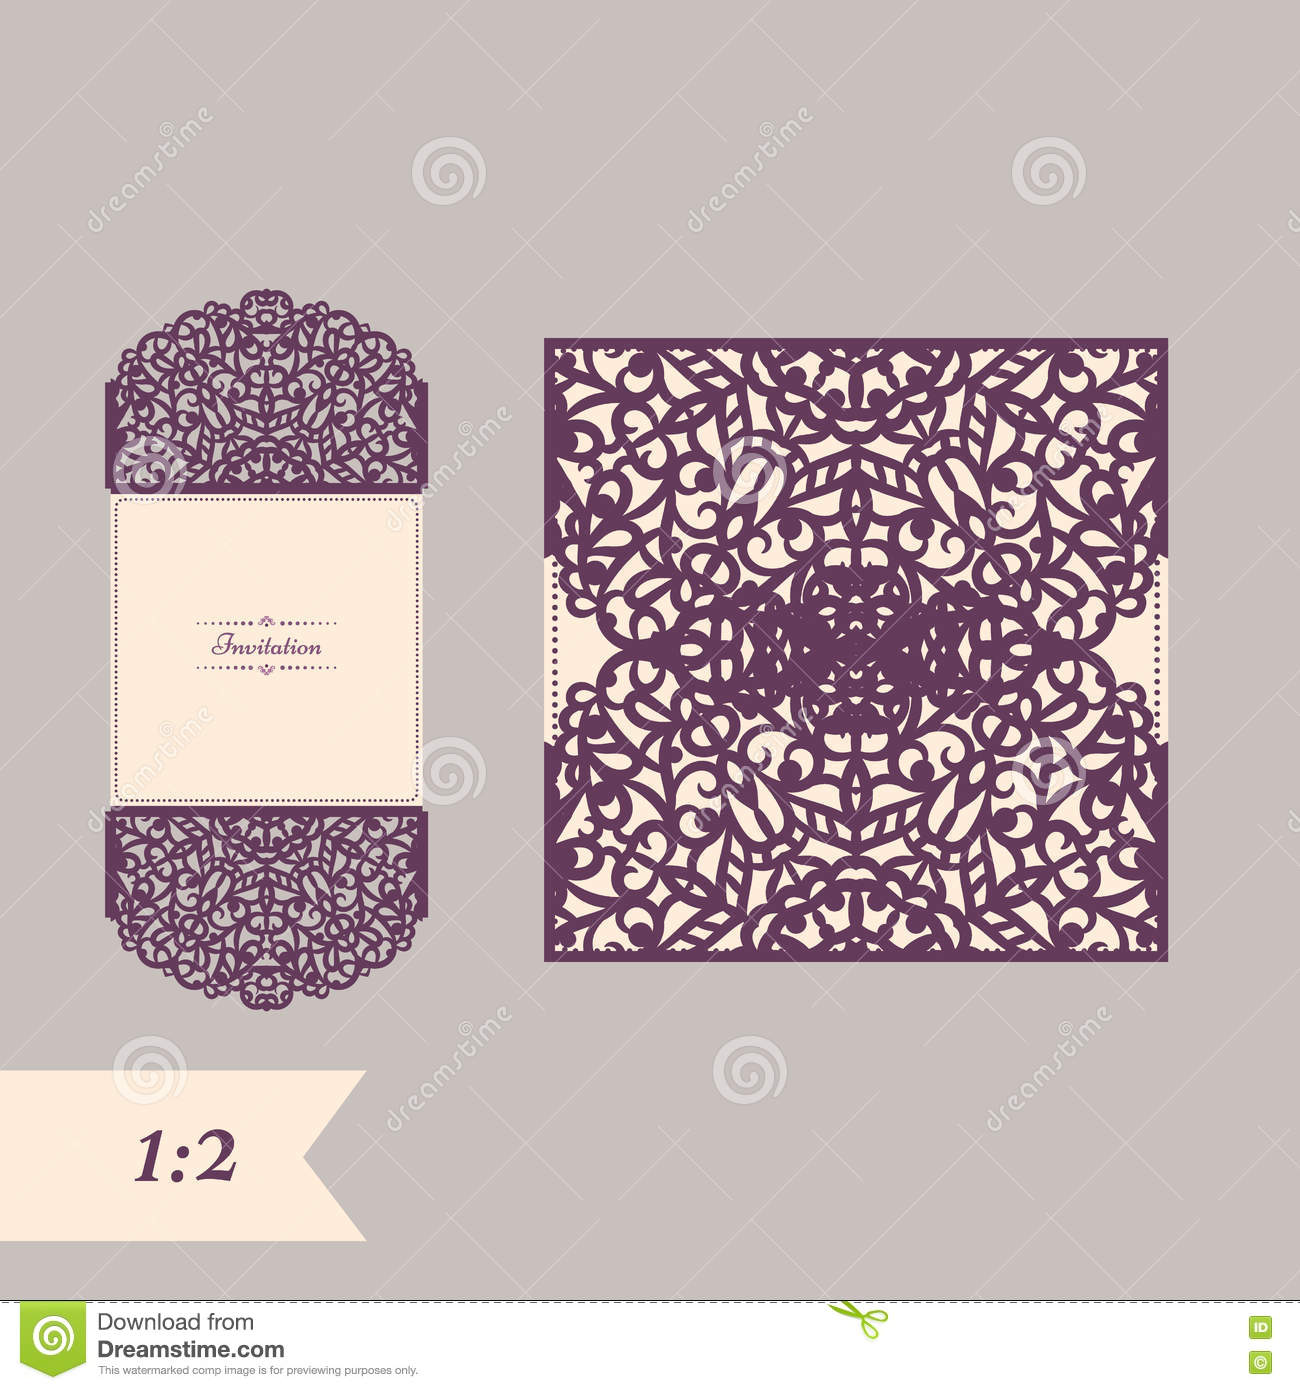 abstract wedding cutout invitation template suitable for